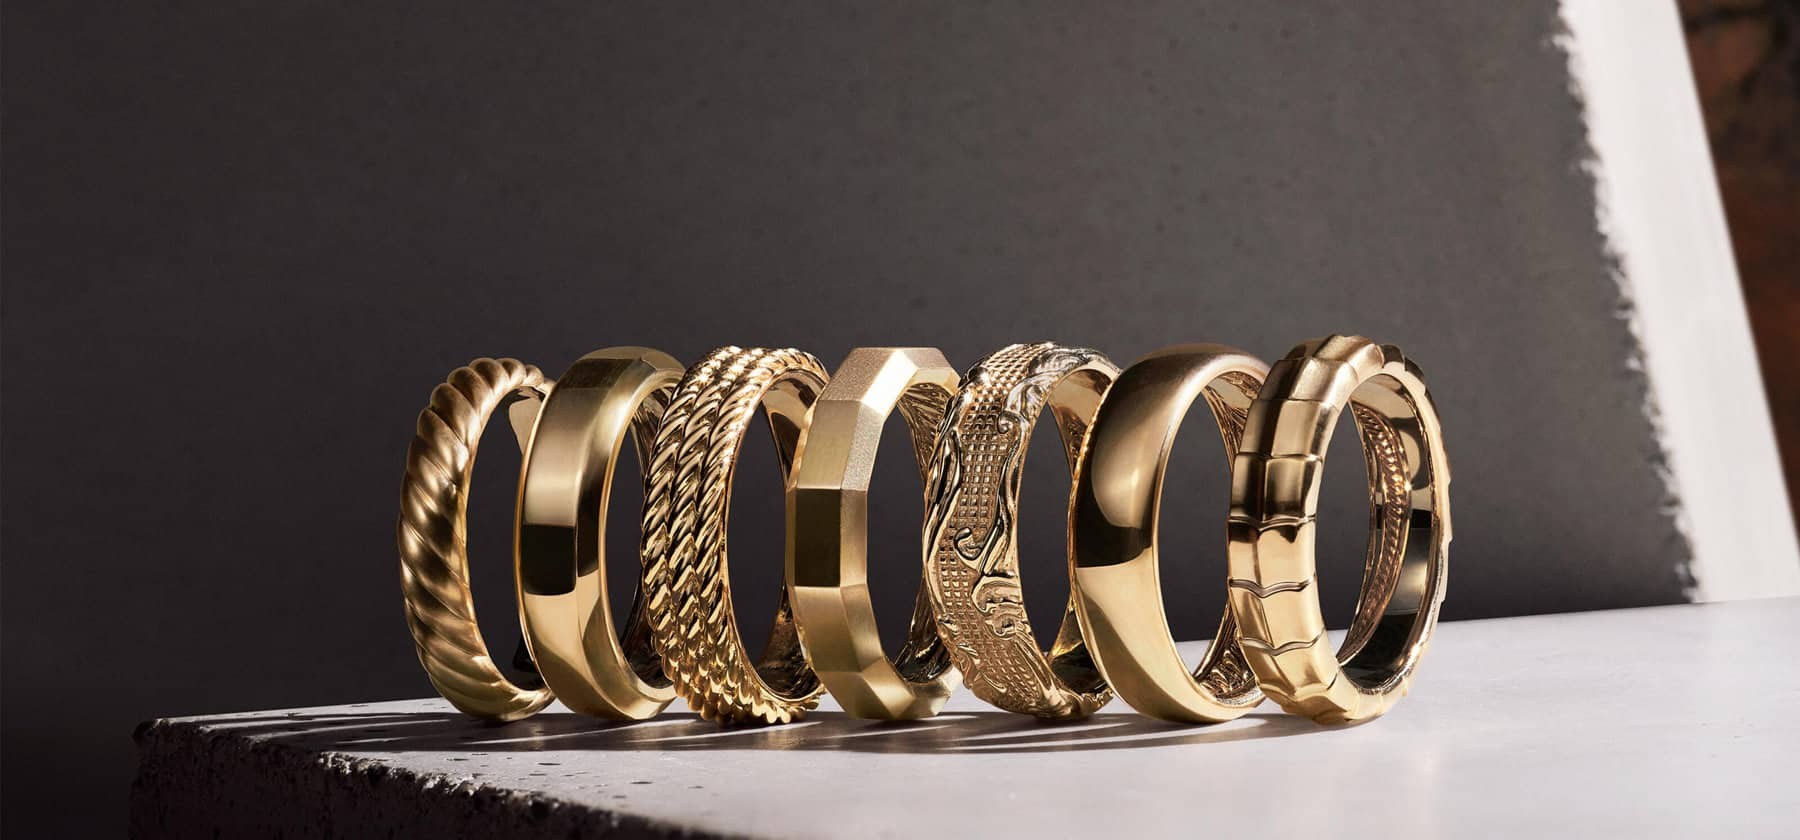 A diagonal stack of David Yurman Beveled, Forged Carbon, DY Classic, Faceted, Waves and The Cable Collection® men's bands, in a mix of precious metals, black titanium, diamonds and forged carbon, standing up on the edge of a light grey stone block and casting long shadows.